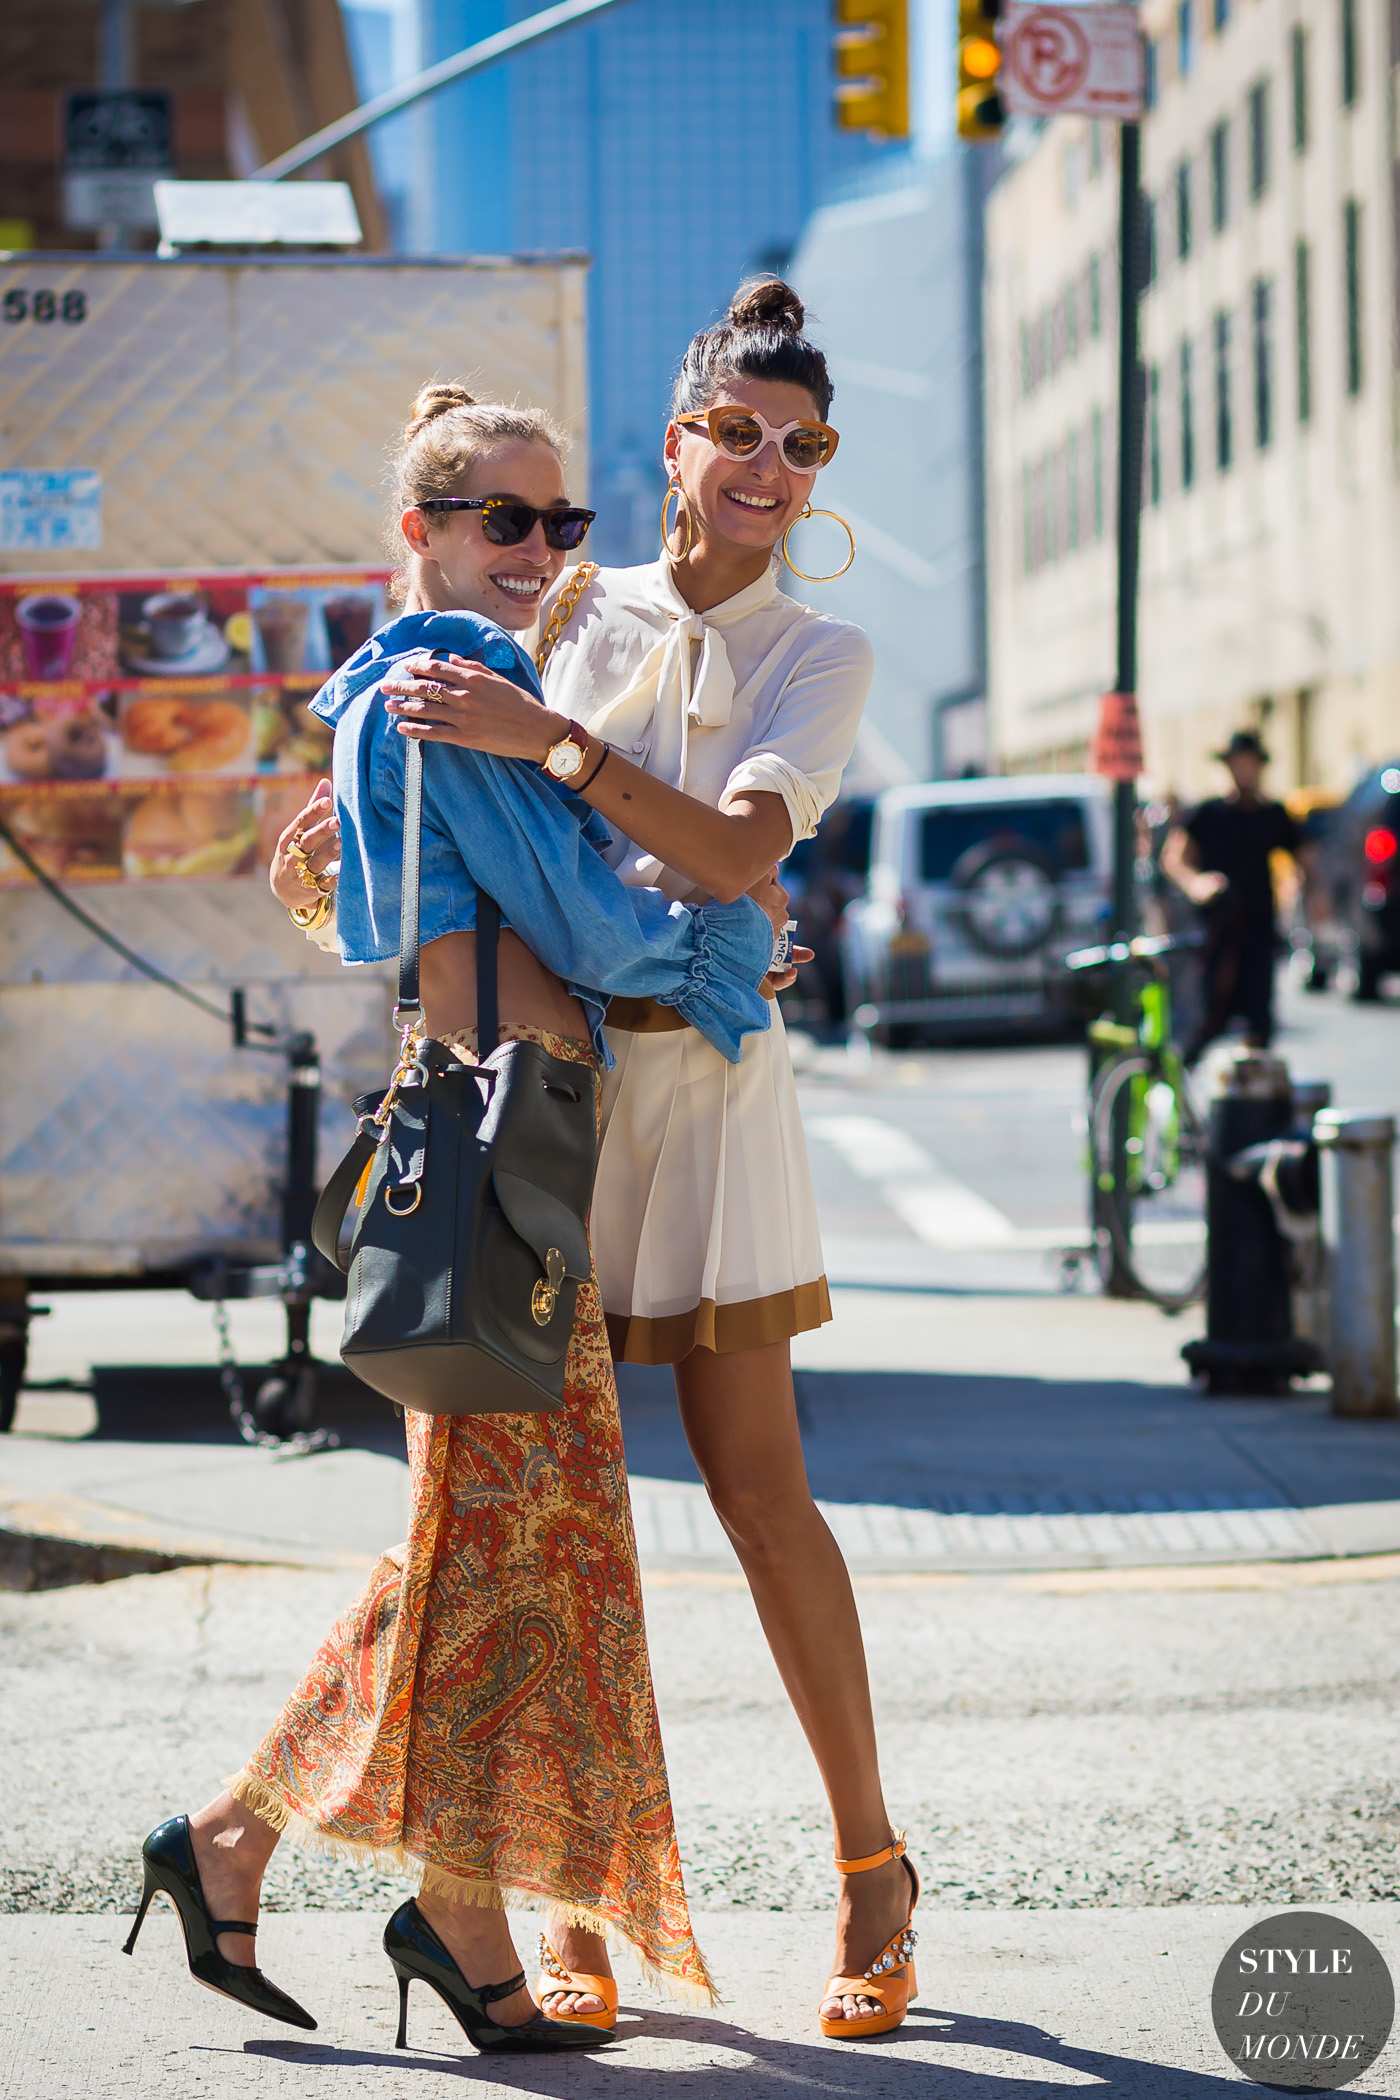 Giovanna Battaglia and Micol Sabbadini Street Style Street Fashion Streetsnaps by STYLEDUMONDE Street Style Fashion Photography